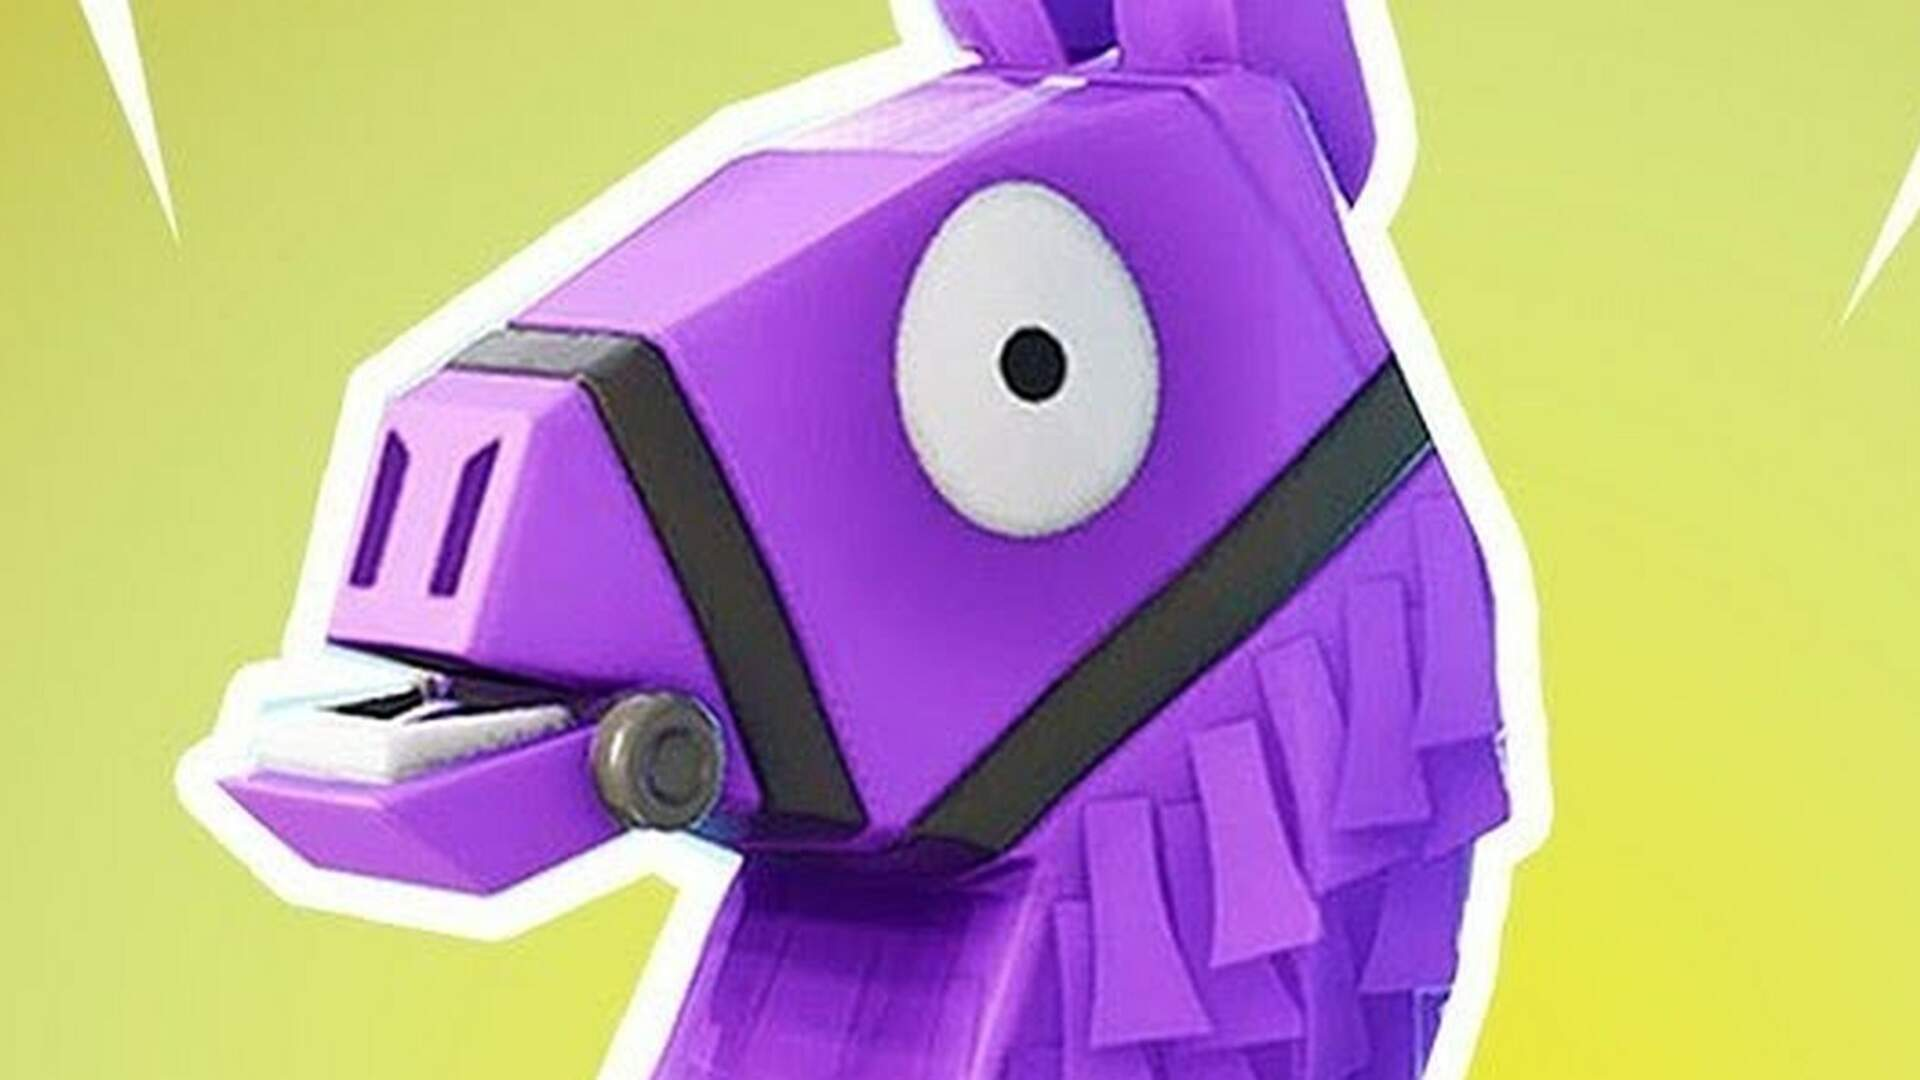 Epic Nerfs the Fortnite Supply Llama, Changes C4 and Minigun Effectiveness